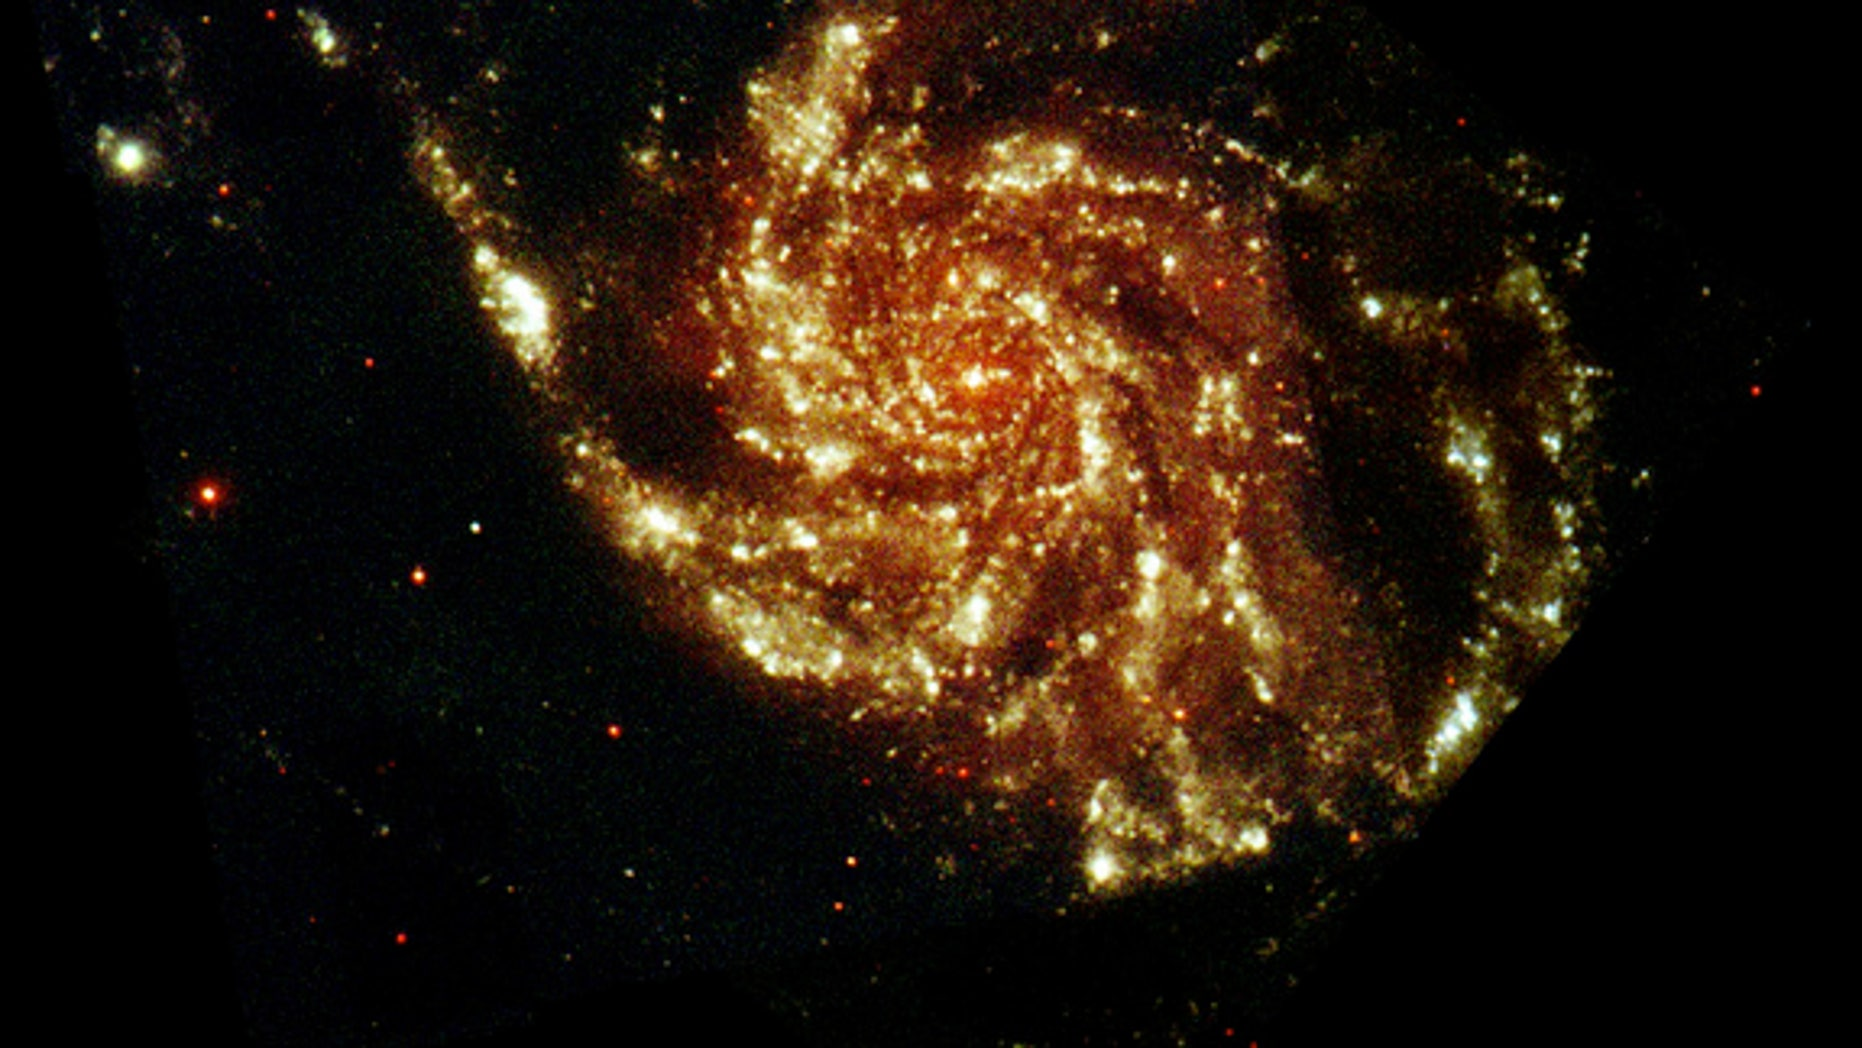 Messier 101, also known as the Pinwheel Galaxy, seen at ultraviolet and optical wavelengths, in an image taken by ESA's XMM-Newton space telescope. A new study looked at the Pinwheel Galaxy in hopes of finding evidence of dark matter interactio